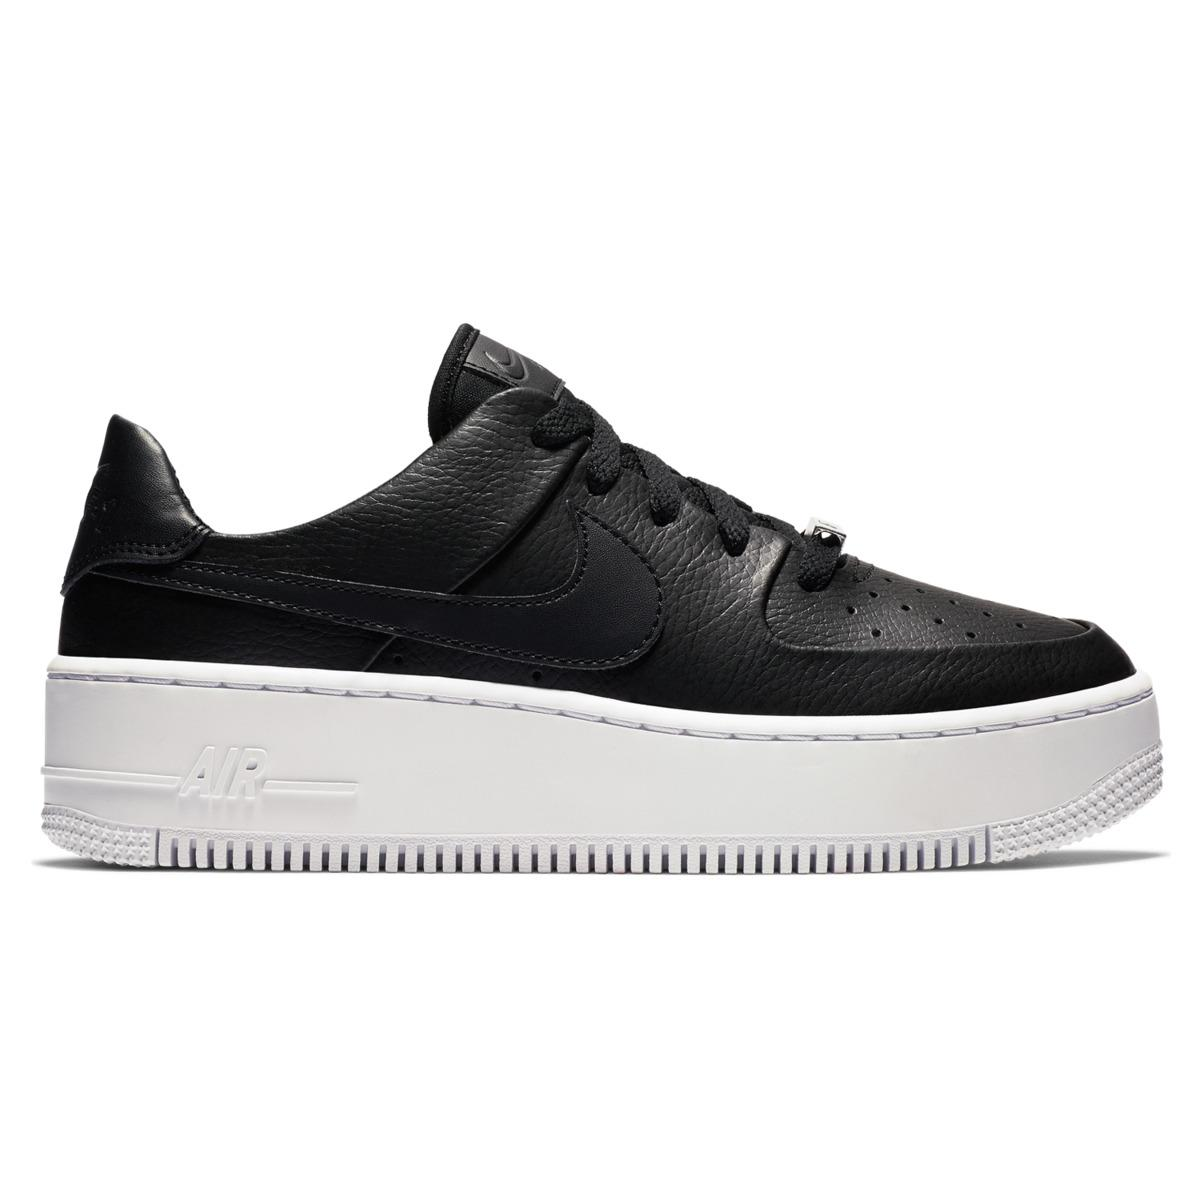 ff45e22619b Lyst - Nike Air Force 1 Sage Low Casual Trainers in Black - Save 19%